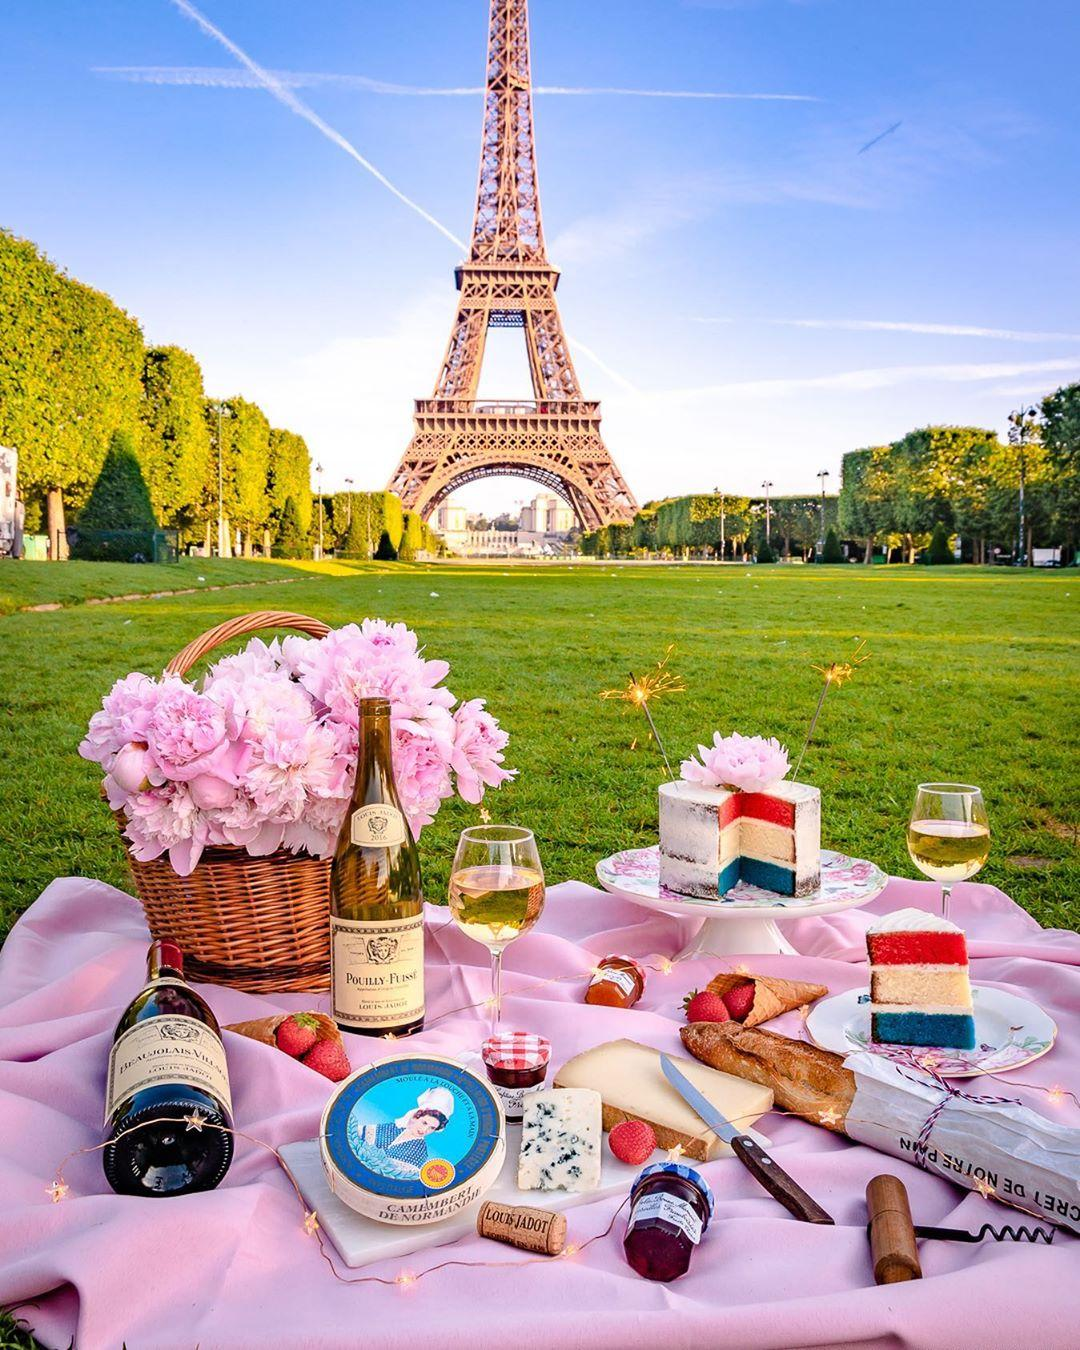 picnic in front of the eiffel tower